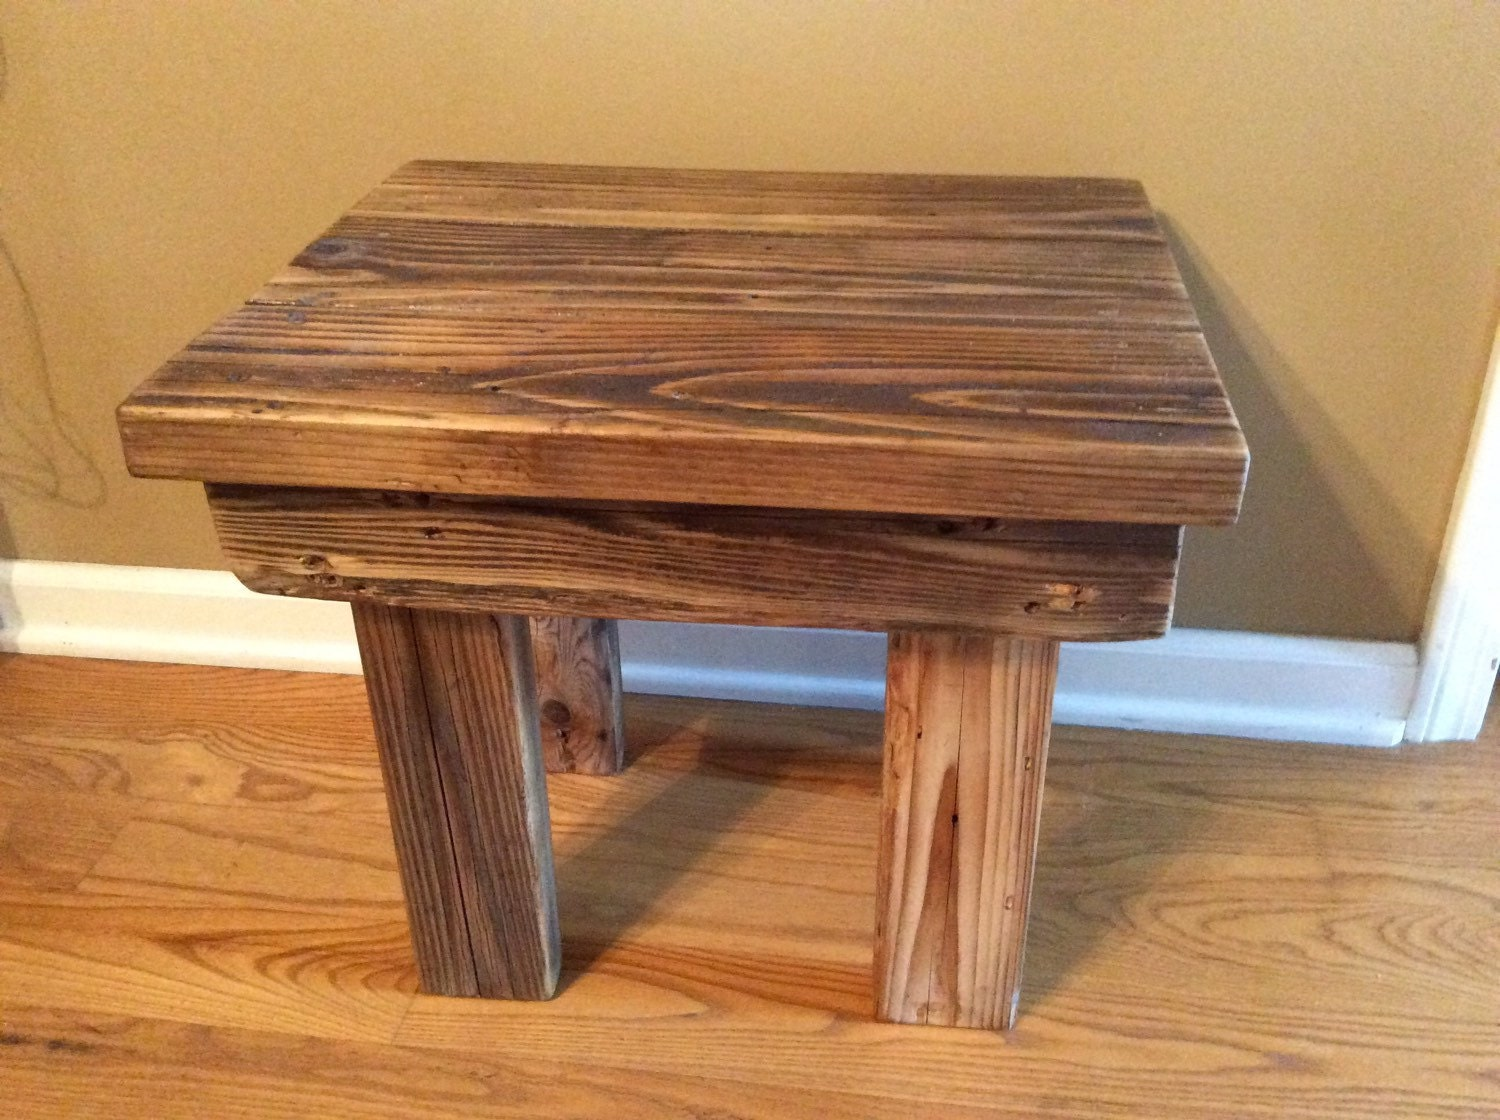 Rustic Cedar Side Table Indooroutdoor. What Is A Writing Desk. Moroccan Side Table. Front Desk Hotel Training. Small Glass Corner Computer Desk. First Communion Table Decorations. Fire Pit Table Propane. Ashley Side Table. Desk With Lockable Drawers